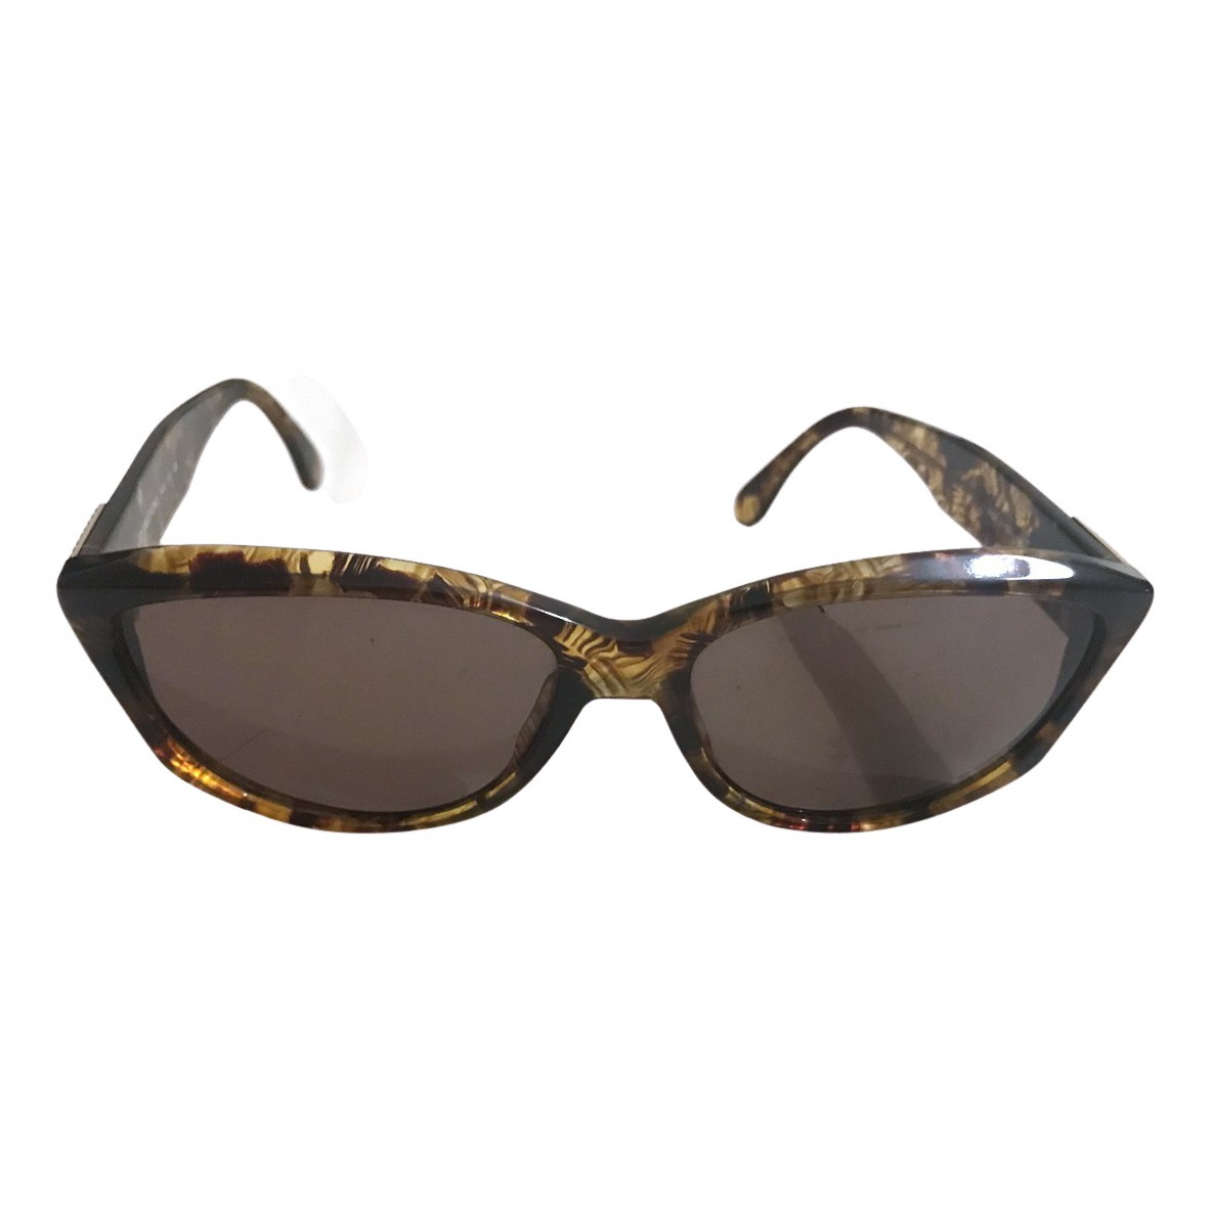 Valentino Garavani N Multicolour Sunglasses for Women N